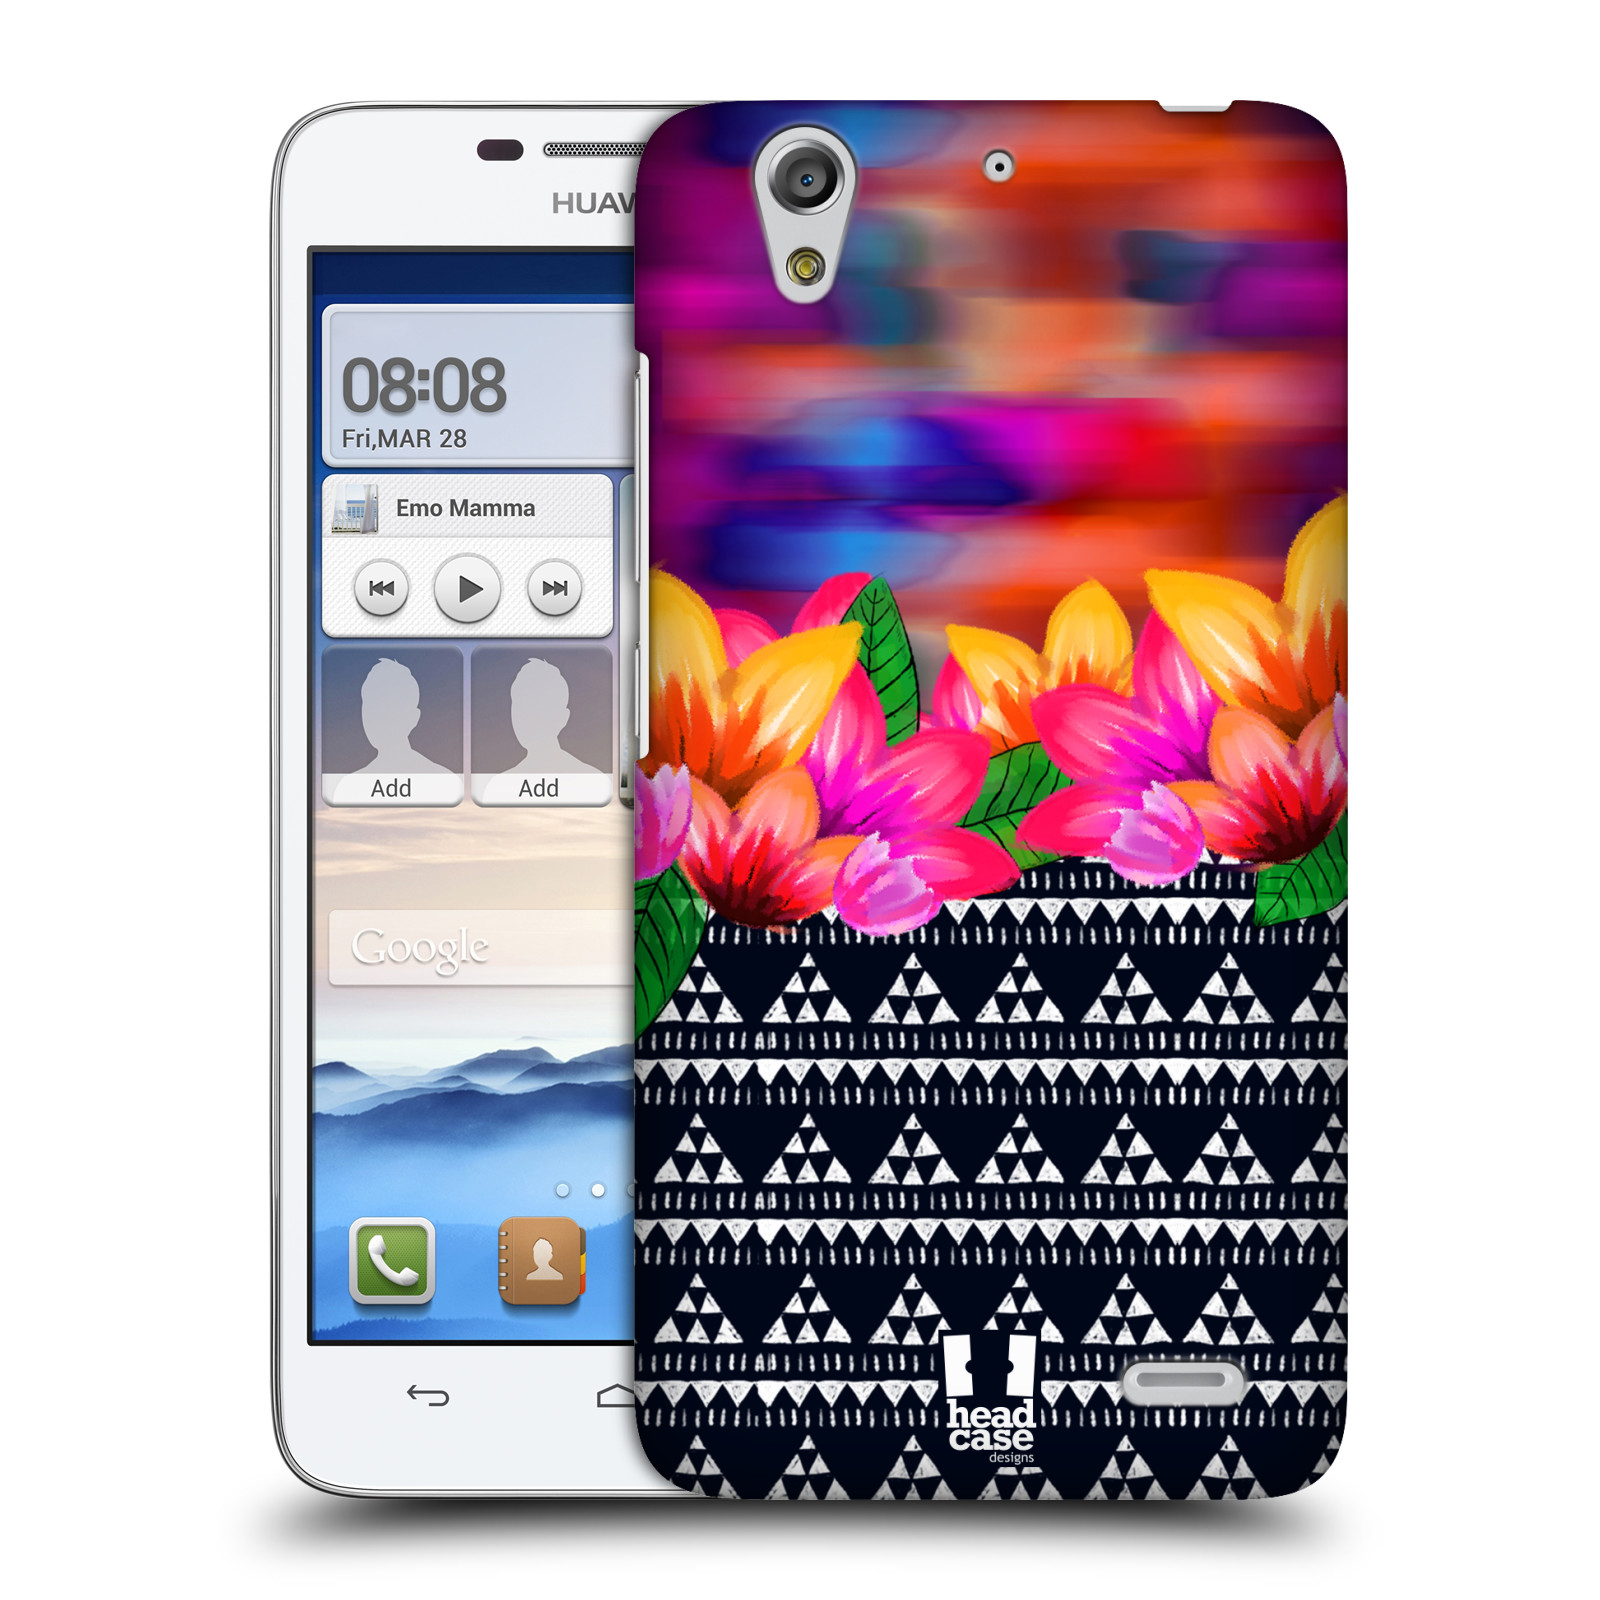 HEAD CASE DESIGNS PATTERN MIX HARD BACK CASE FOR HUAWEI ASCEND G630